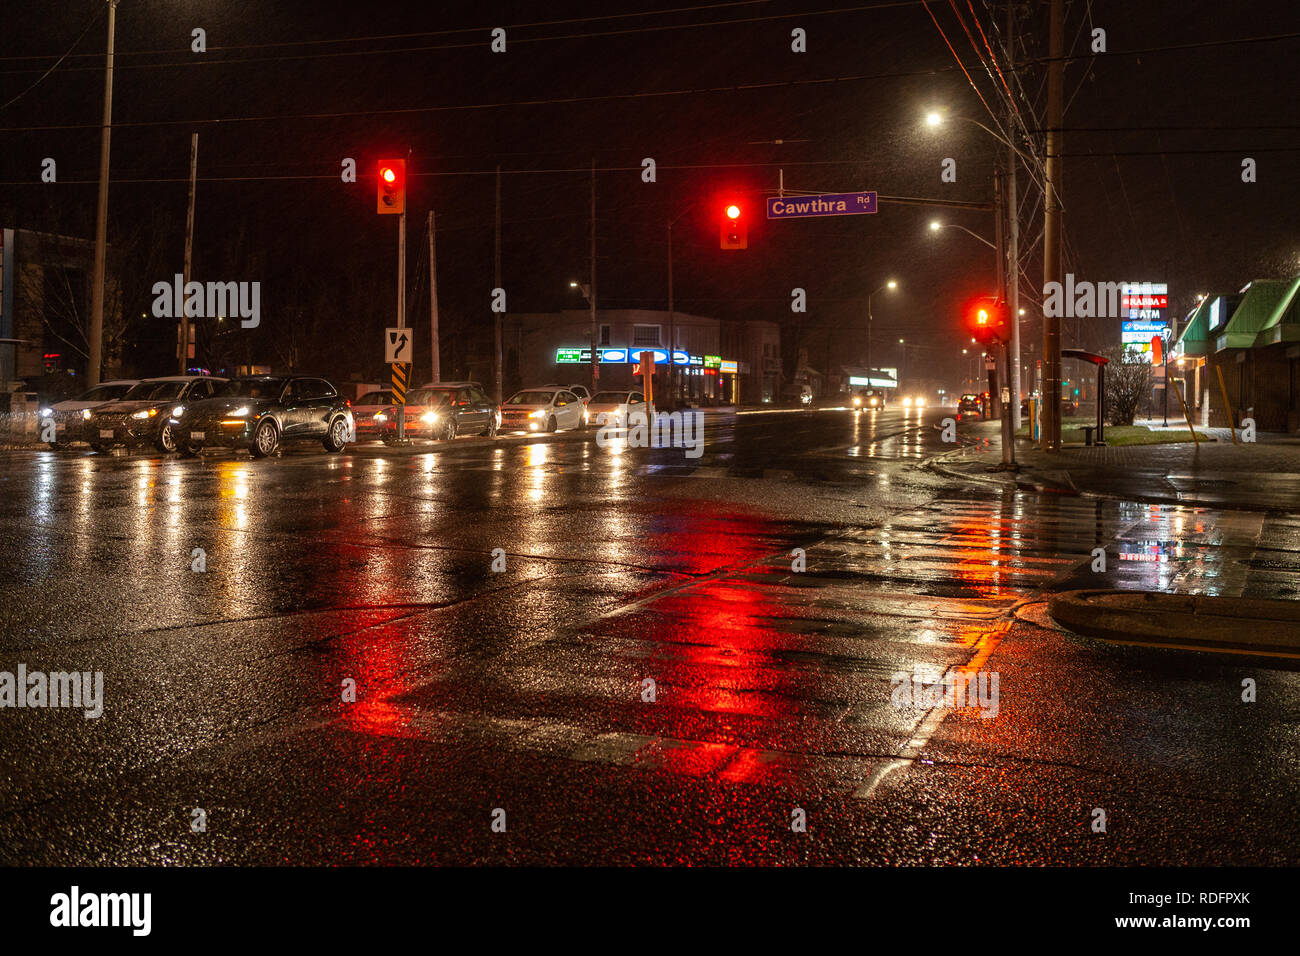 Toronto, CANADA - December 4th, 2019: Dramatic rainy night with empty streets and reflecting traffic lights in lonly city suburbia roads - Stock Image